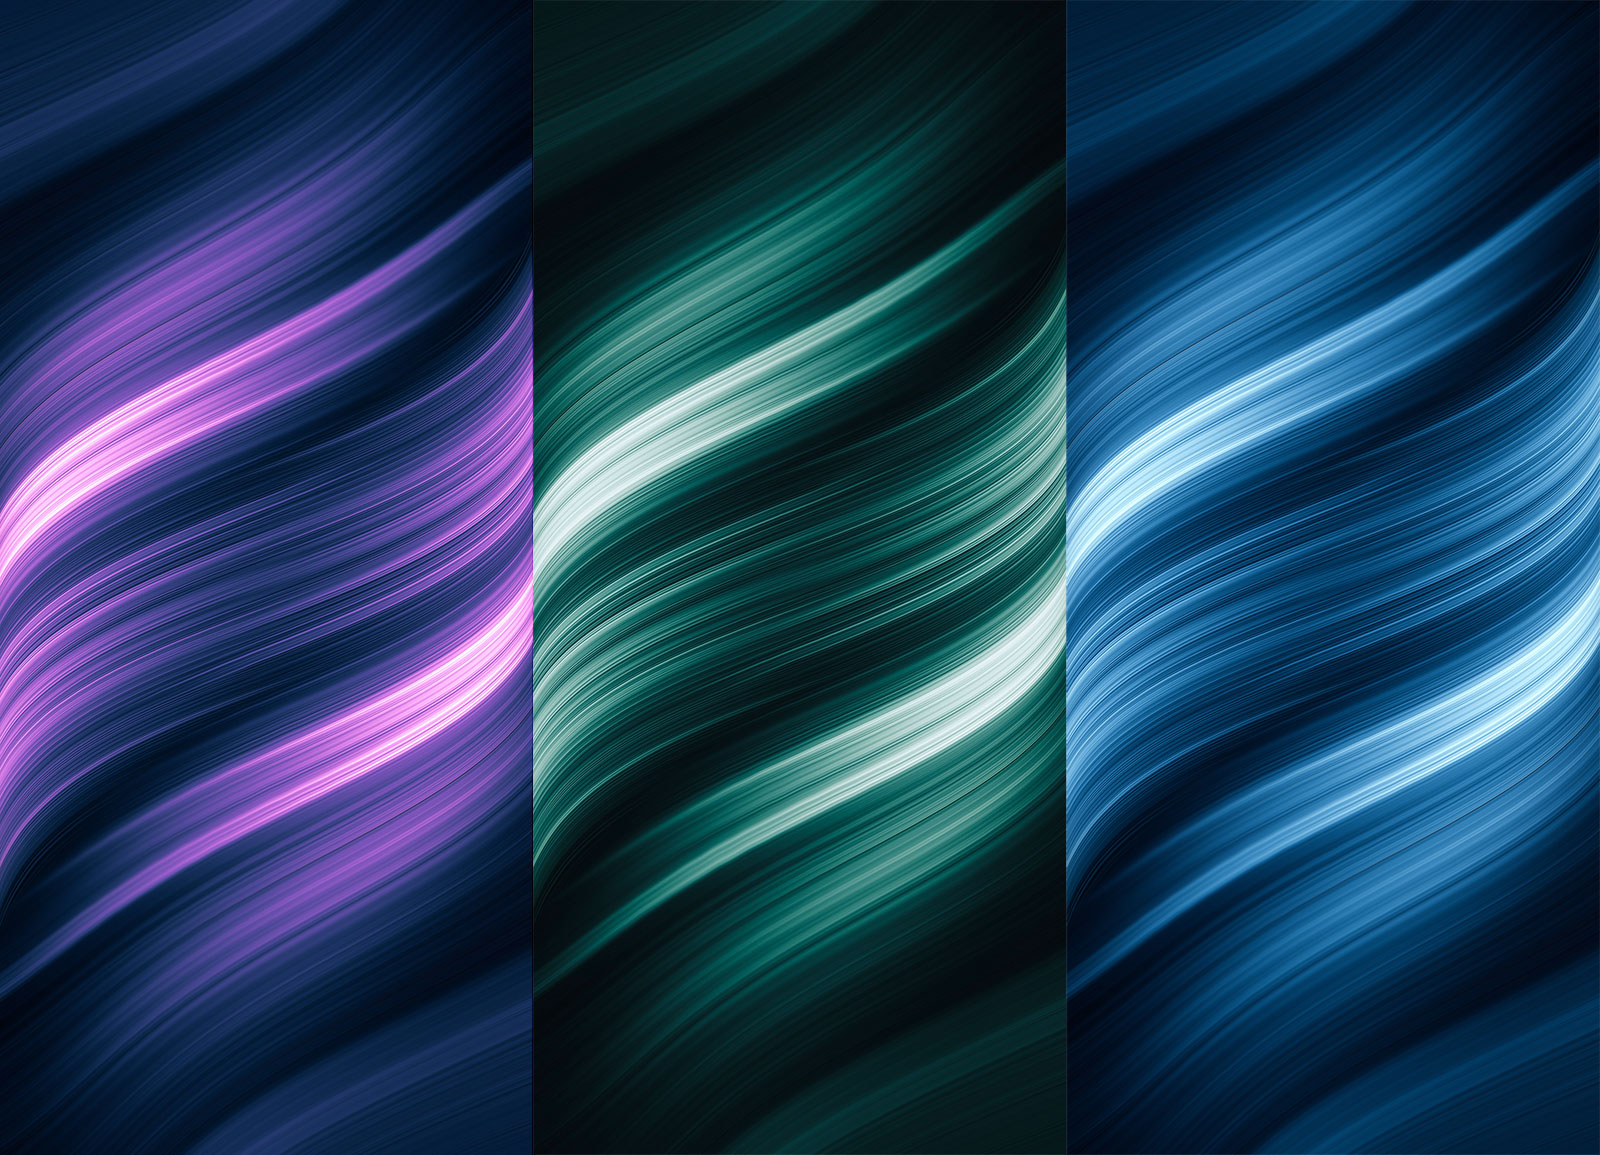 Wrapped Lights de @AR72014 en Azul, Verde y Morado